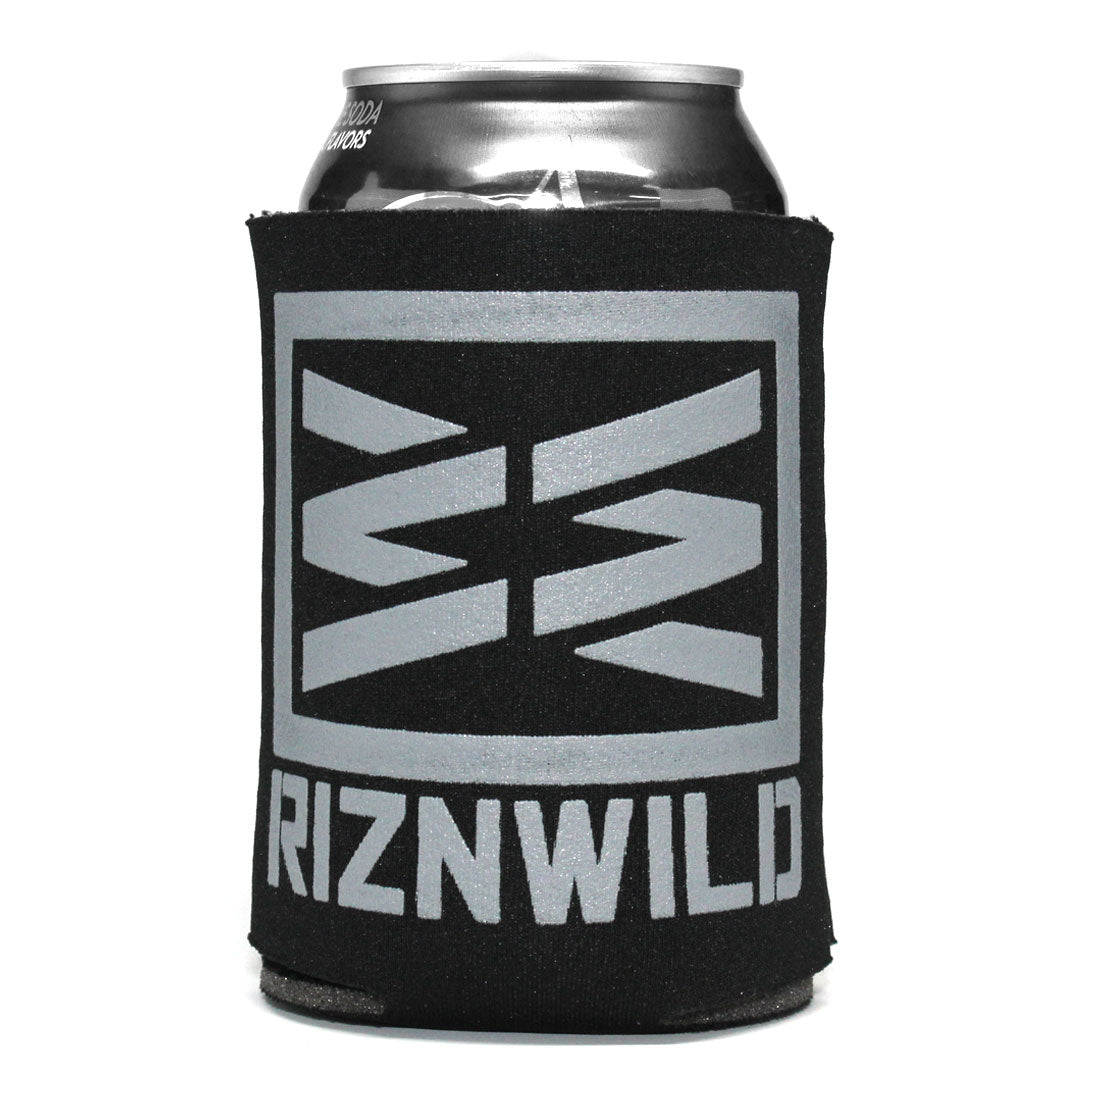 RIZNWILD | style beer koozies black and grey in color